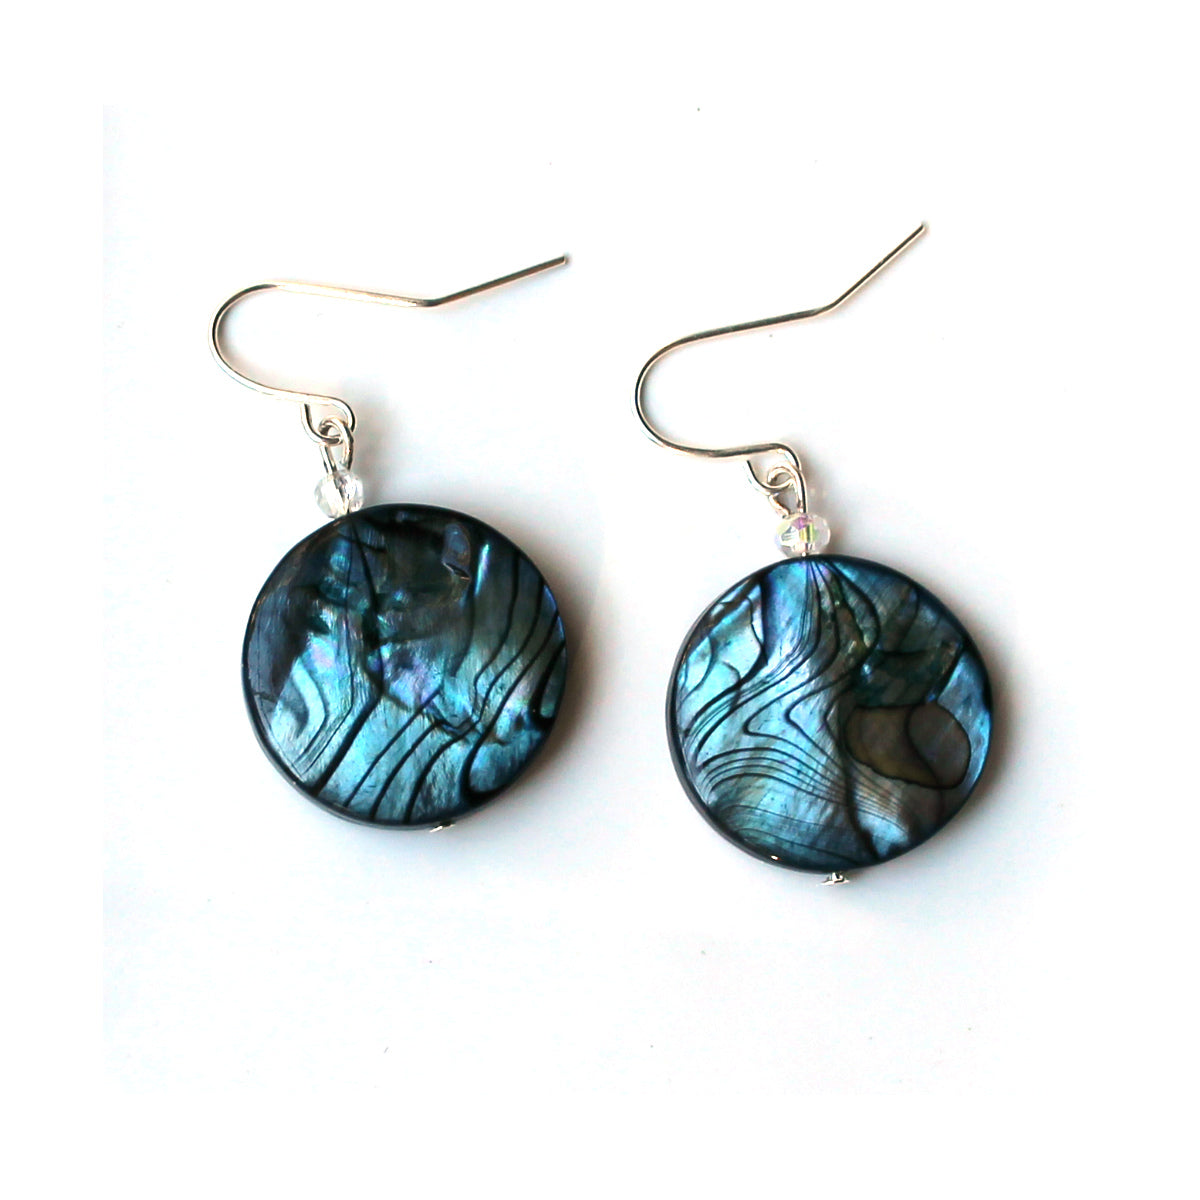 blue earrings made with natural shell, drop earring style